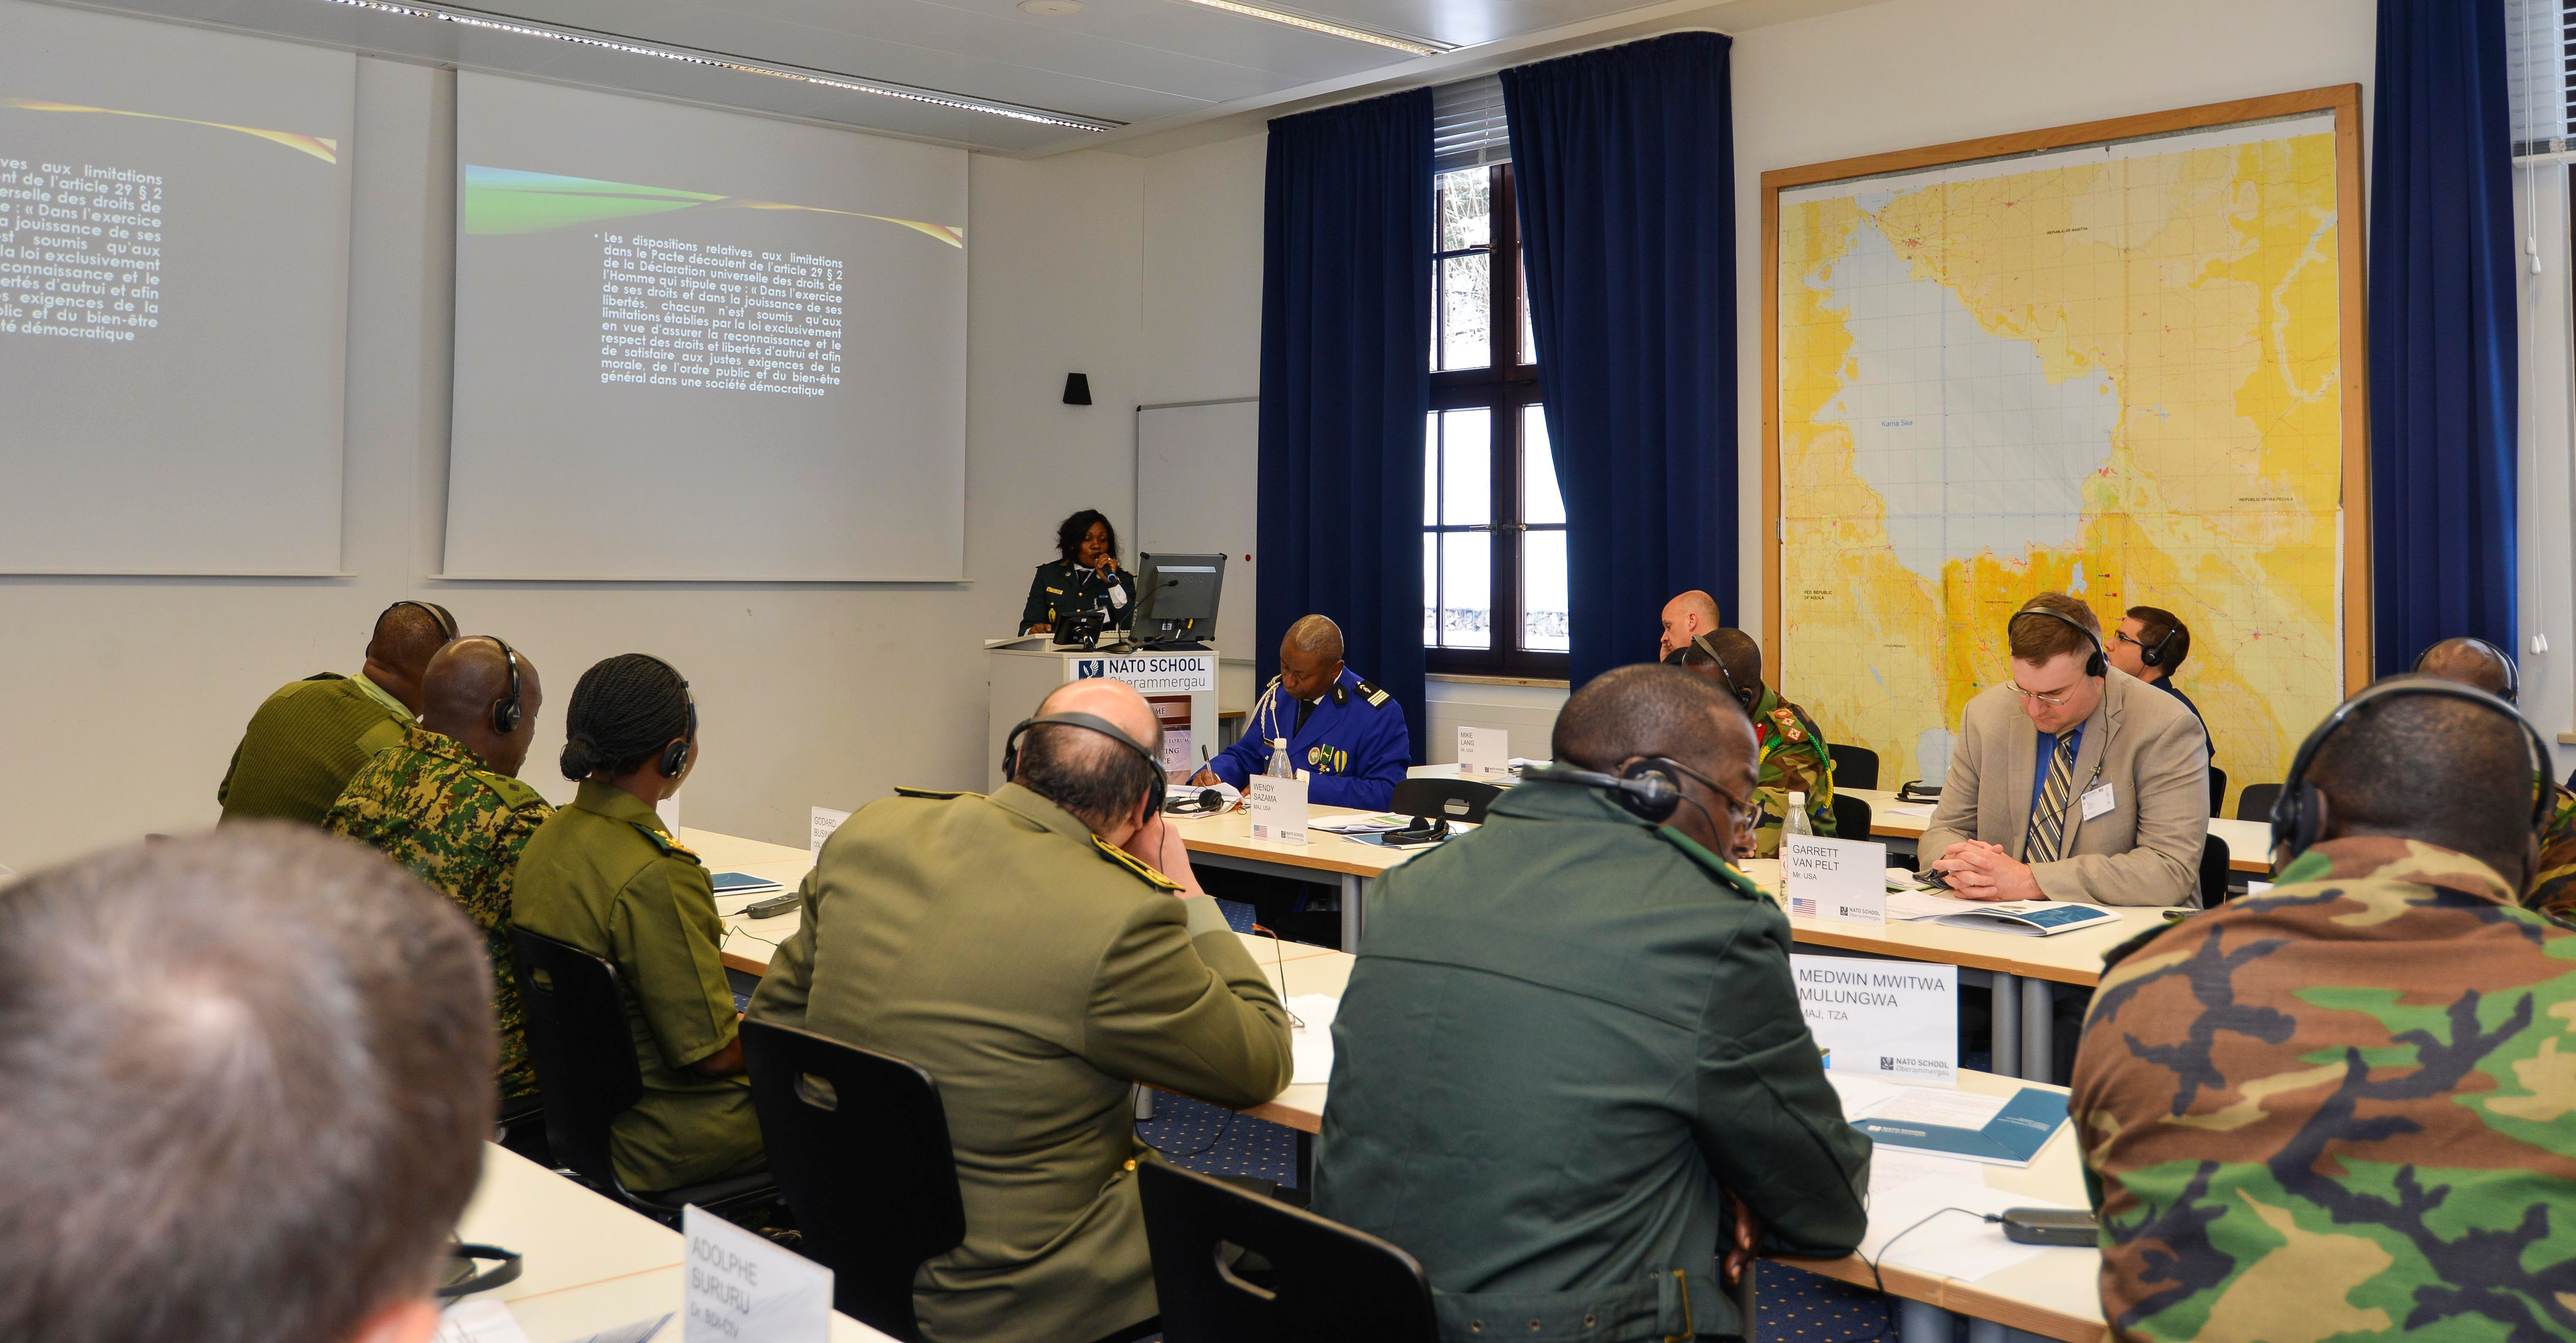 Africa Military Law Forum Co-Chairwoman Lt. Col. Marguerite Meffand Loaw, (standing at podium in background) current president of the Cameroon Military Tribunal, describes terrorism prosecutions and the institutional safeguards which exist in Cameroon to insure a fair trial, Oberammergau, Germany, March 1, 2018. (Photo by Cpl. Victor Leonard, NATO School Public Affairs/Released)